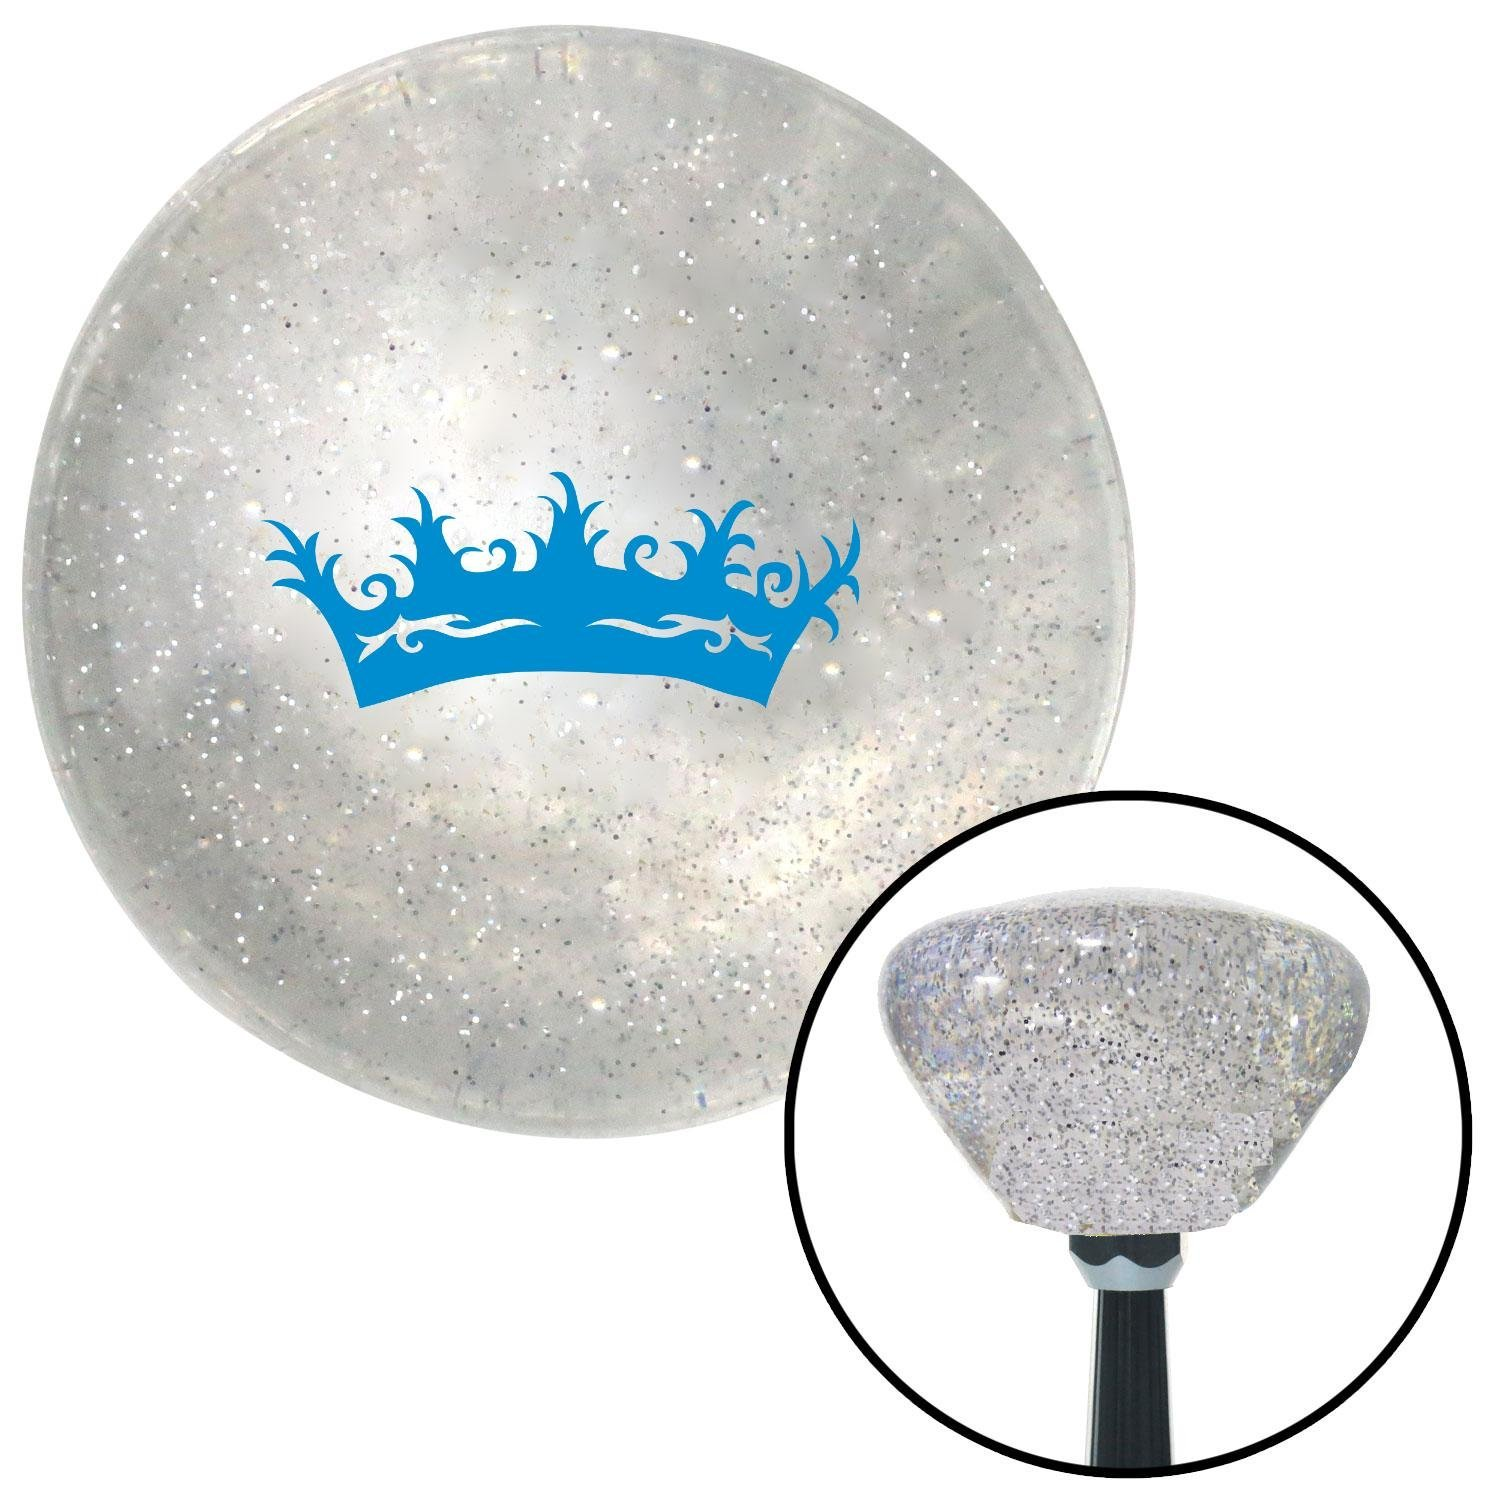 American Shifter 160837 Clear Retro Metal Flake Shift Knob with M16 x 1.5 Insert Blue Prince Crown